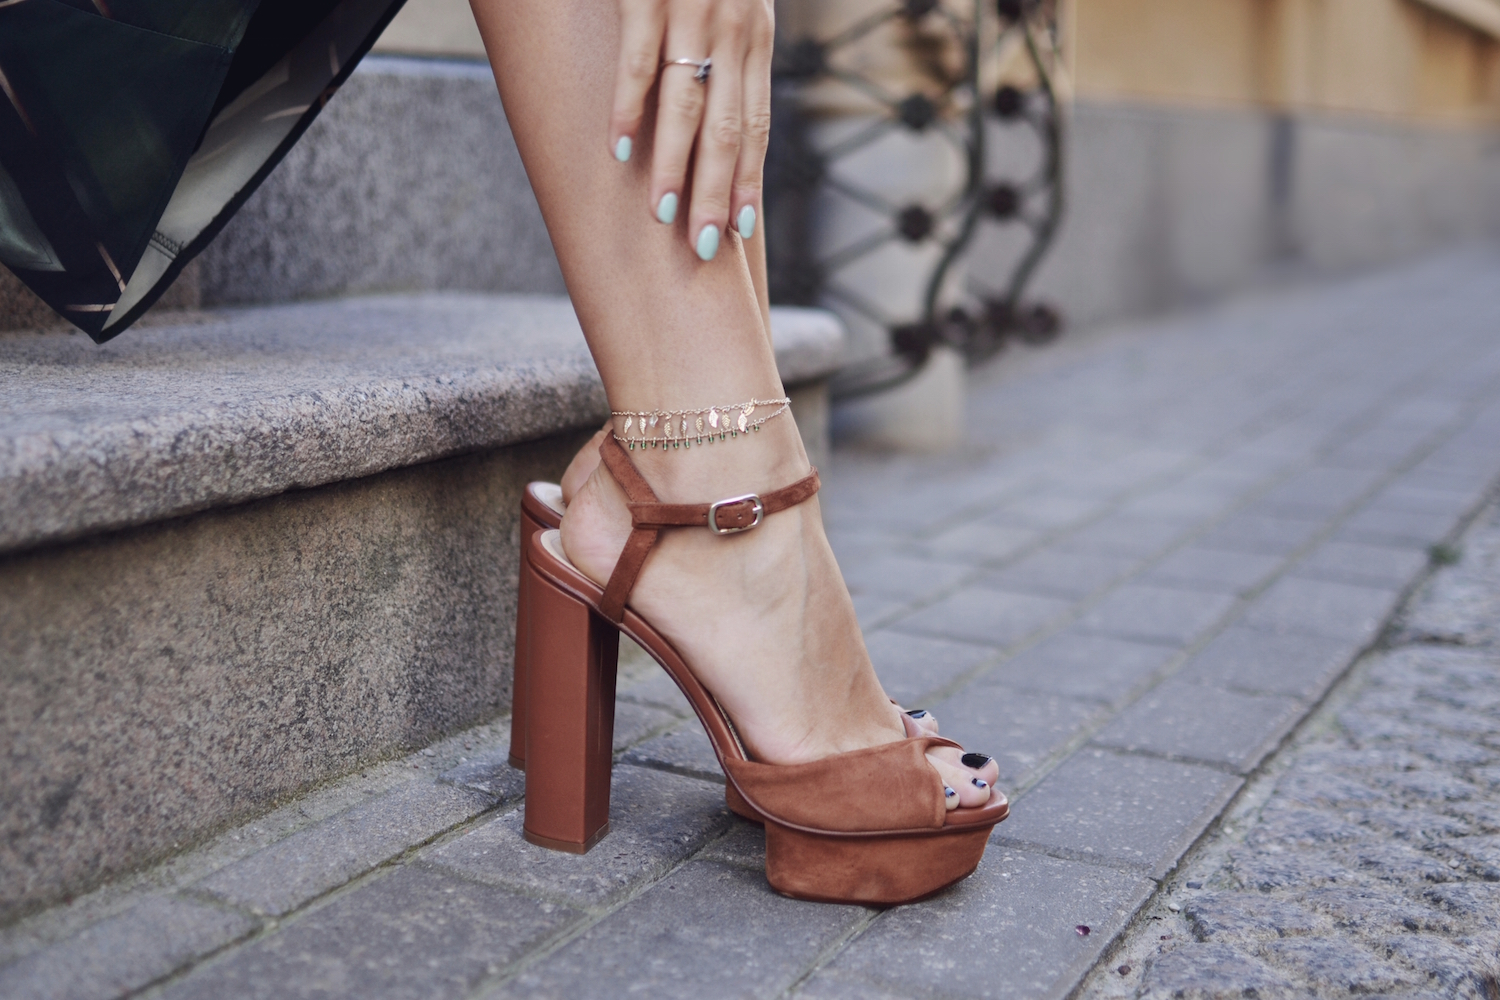 H&M chunky heels and anklet